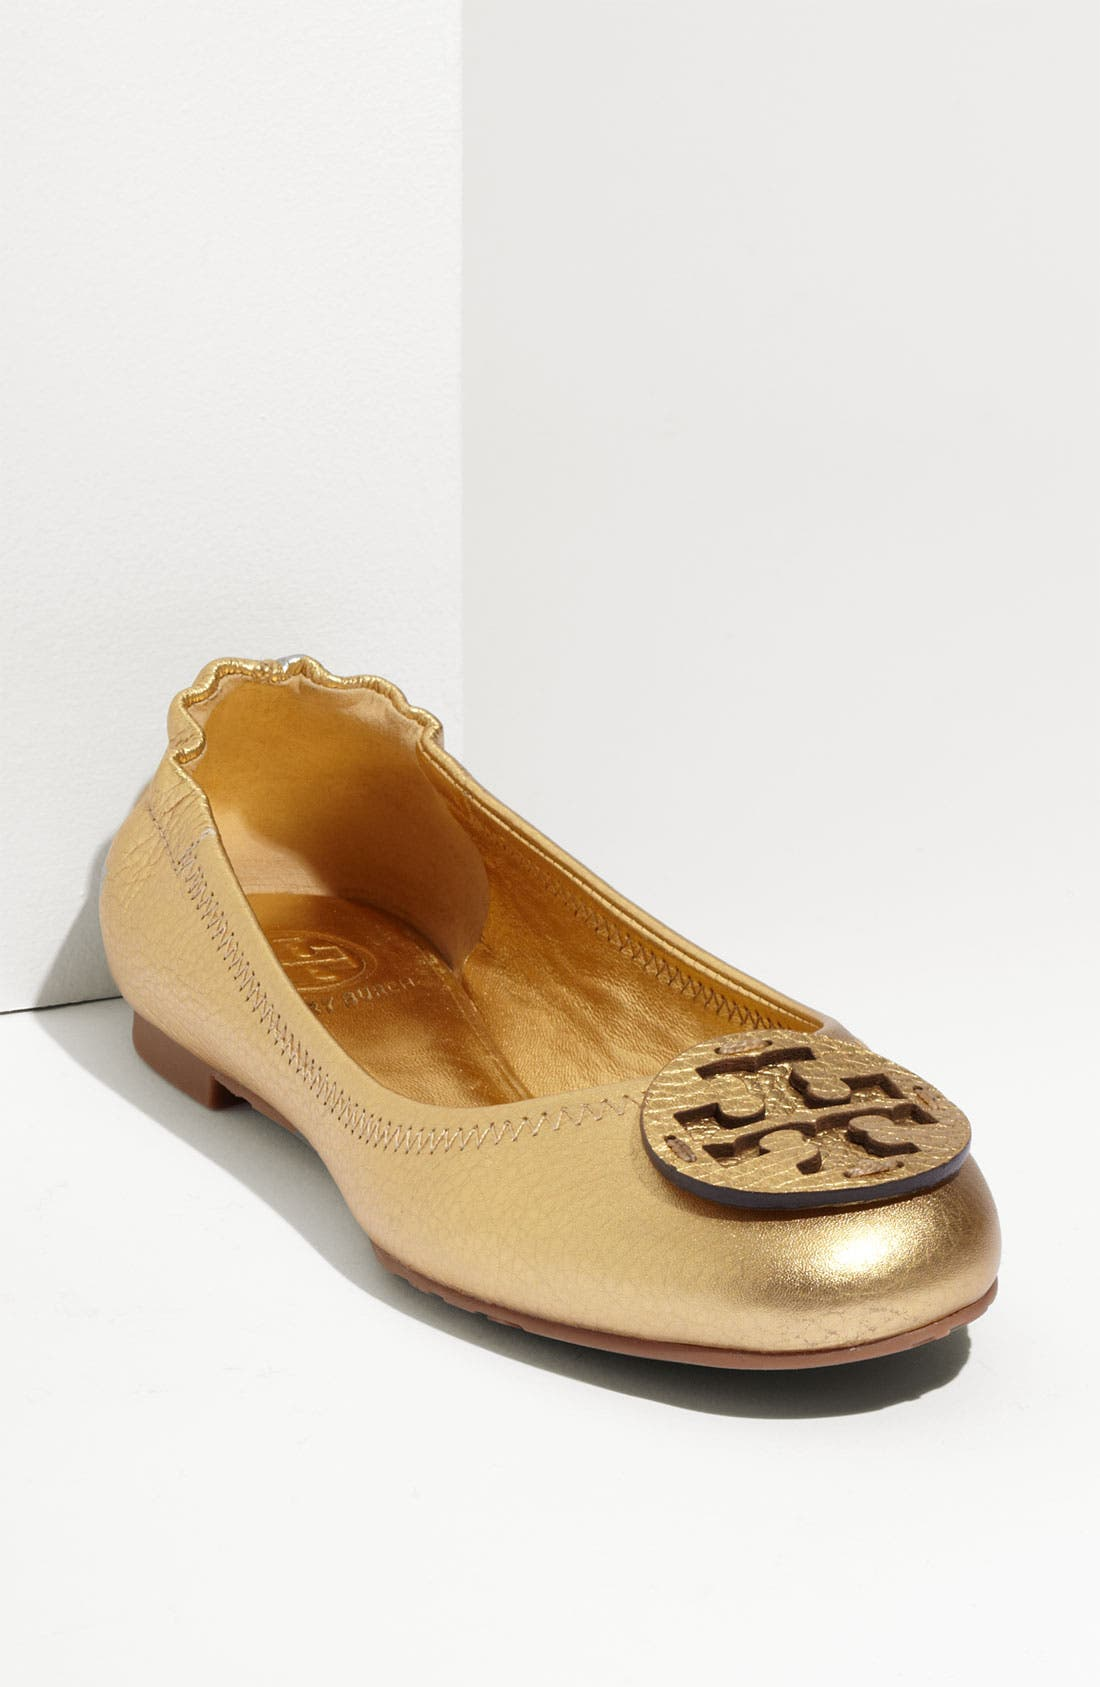 Main Image - Tory Burch 'Reva' Metallic Tumbled Flat